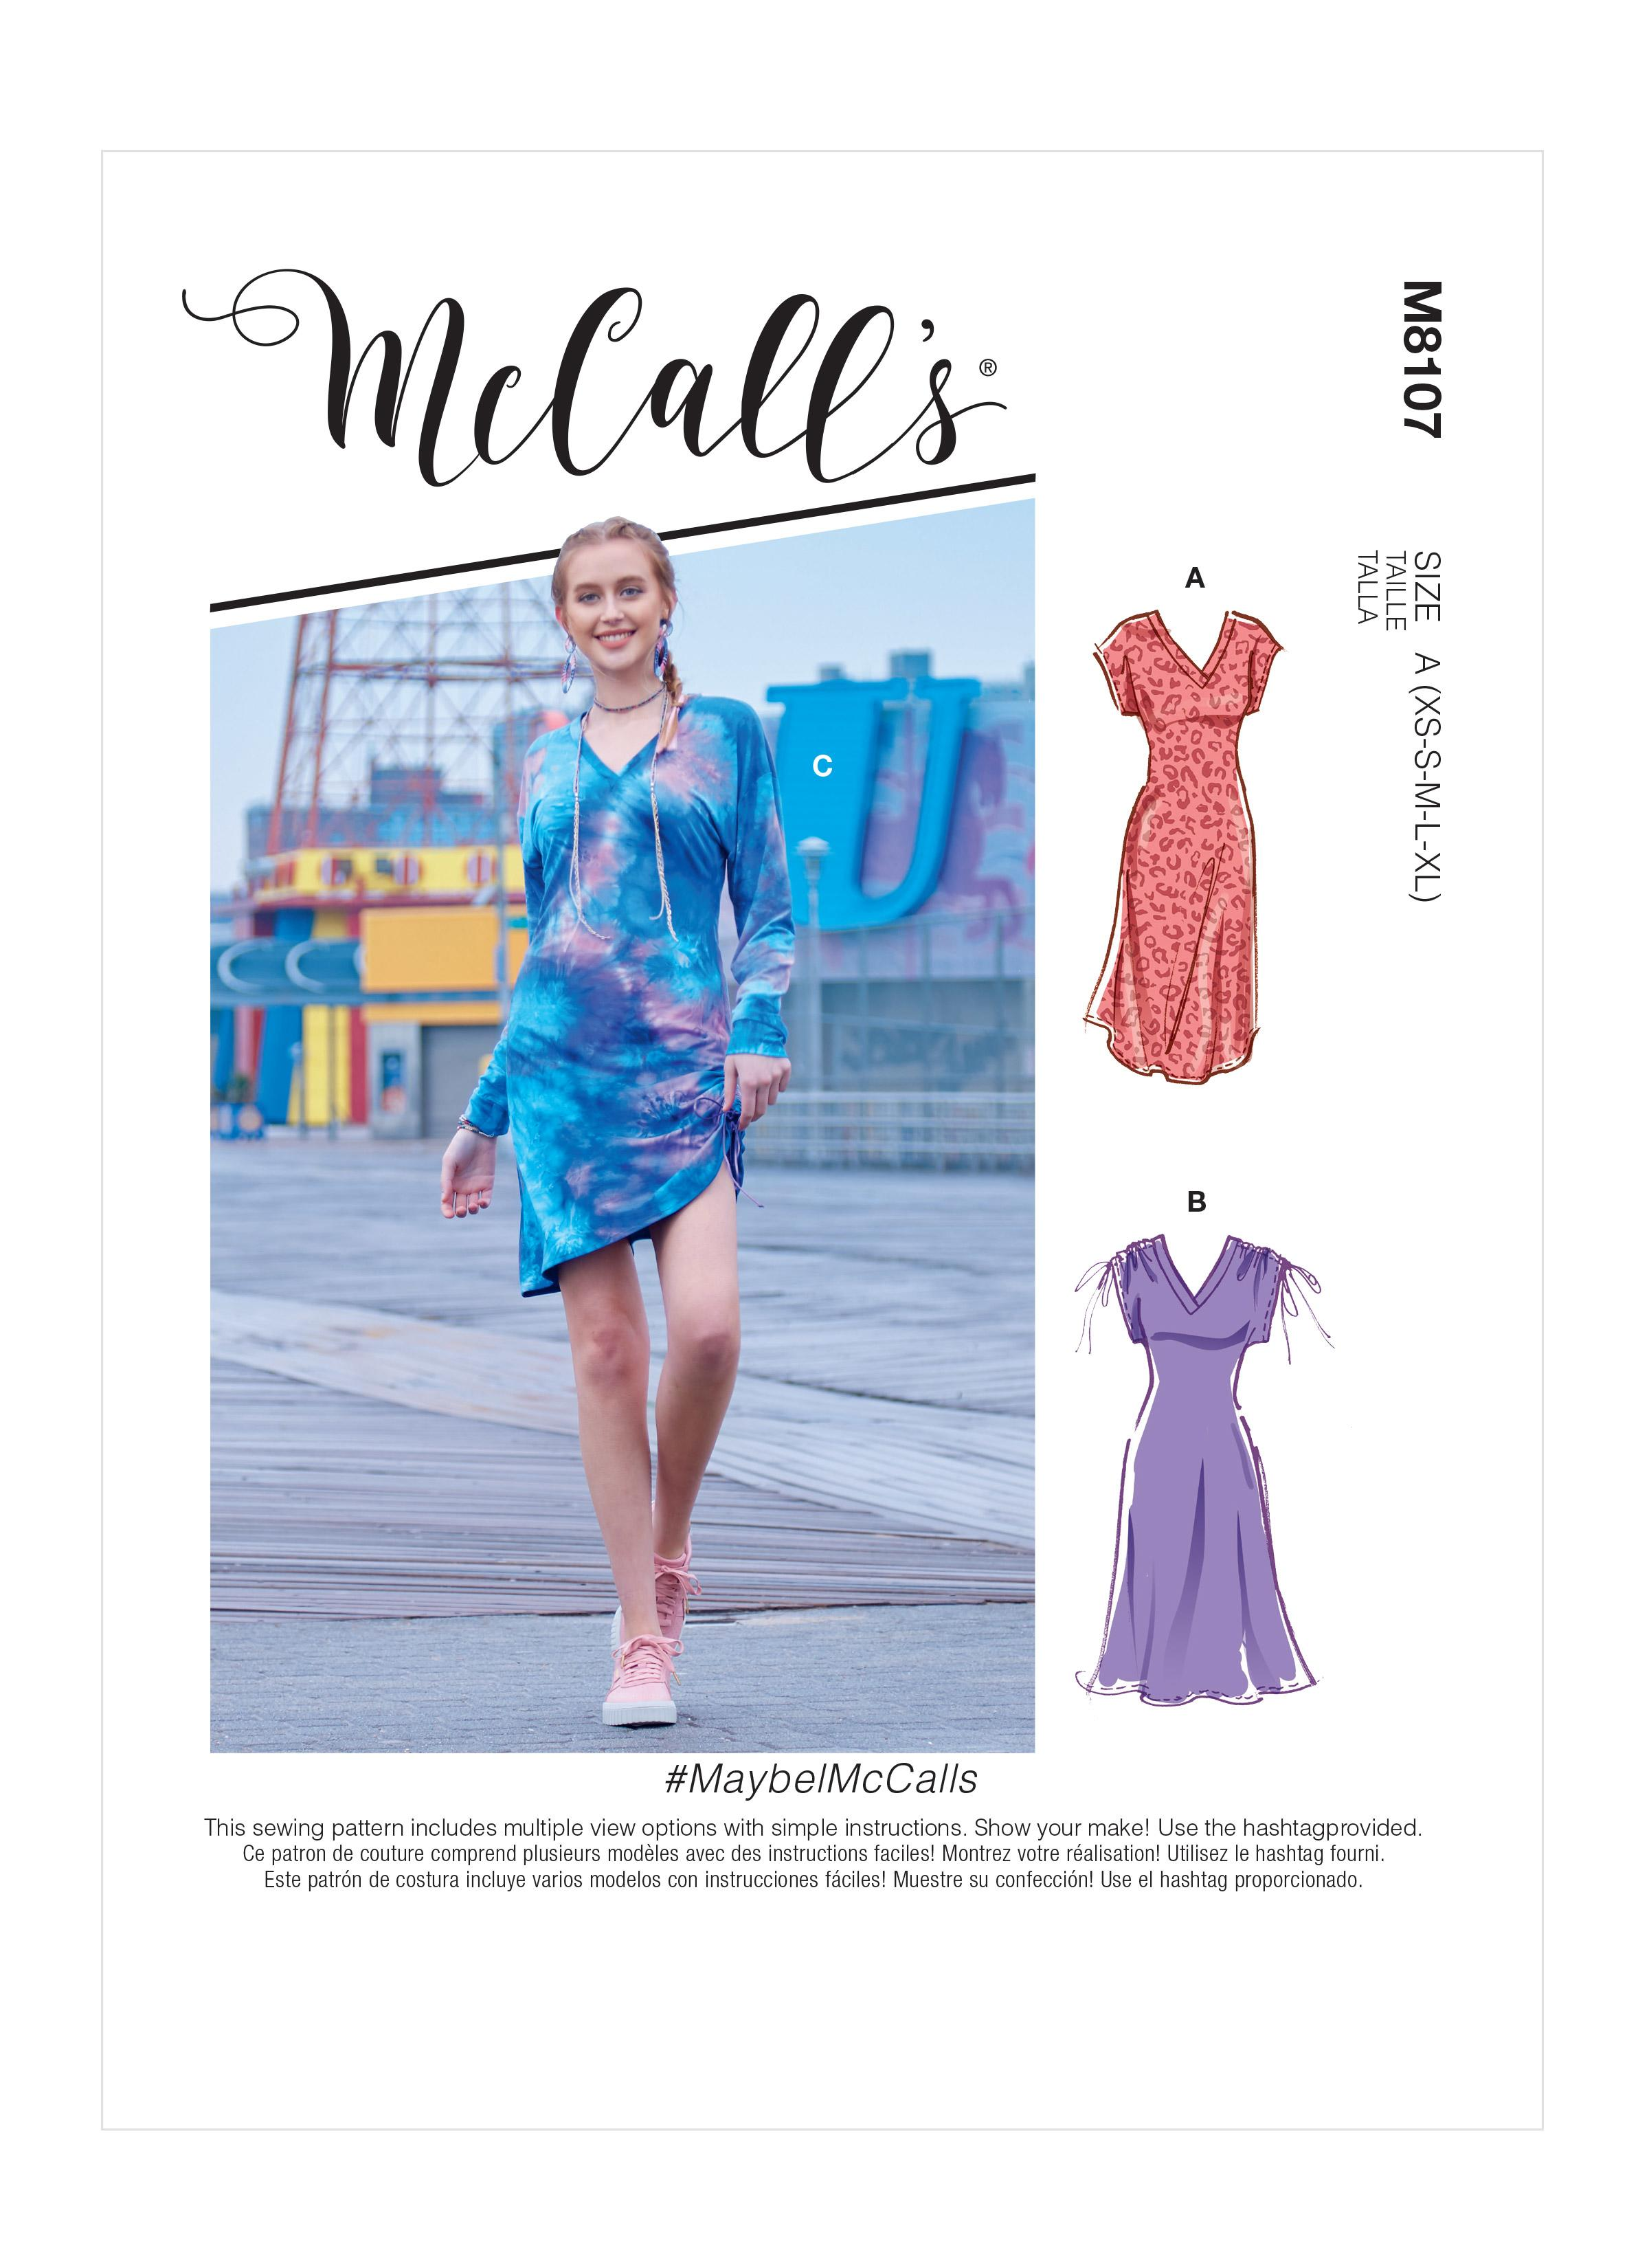 McCalls M8107 #MaybelMcCalls - Misses' V-Neck Pull-Over Knit Dresses With Drawstring Detail